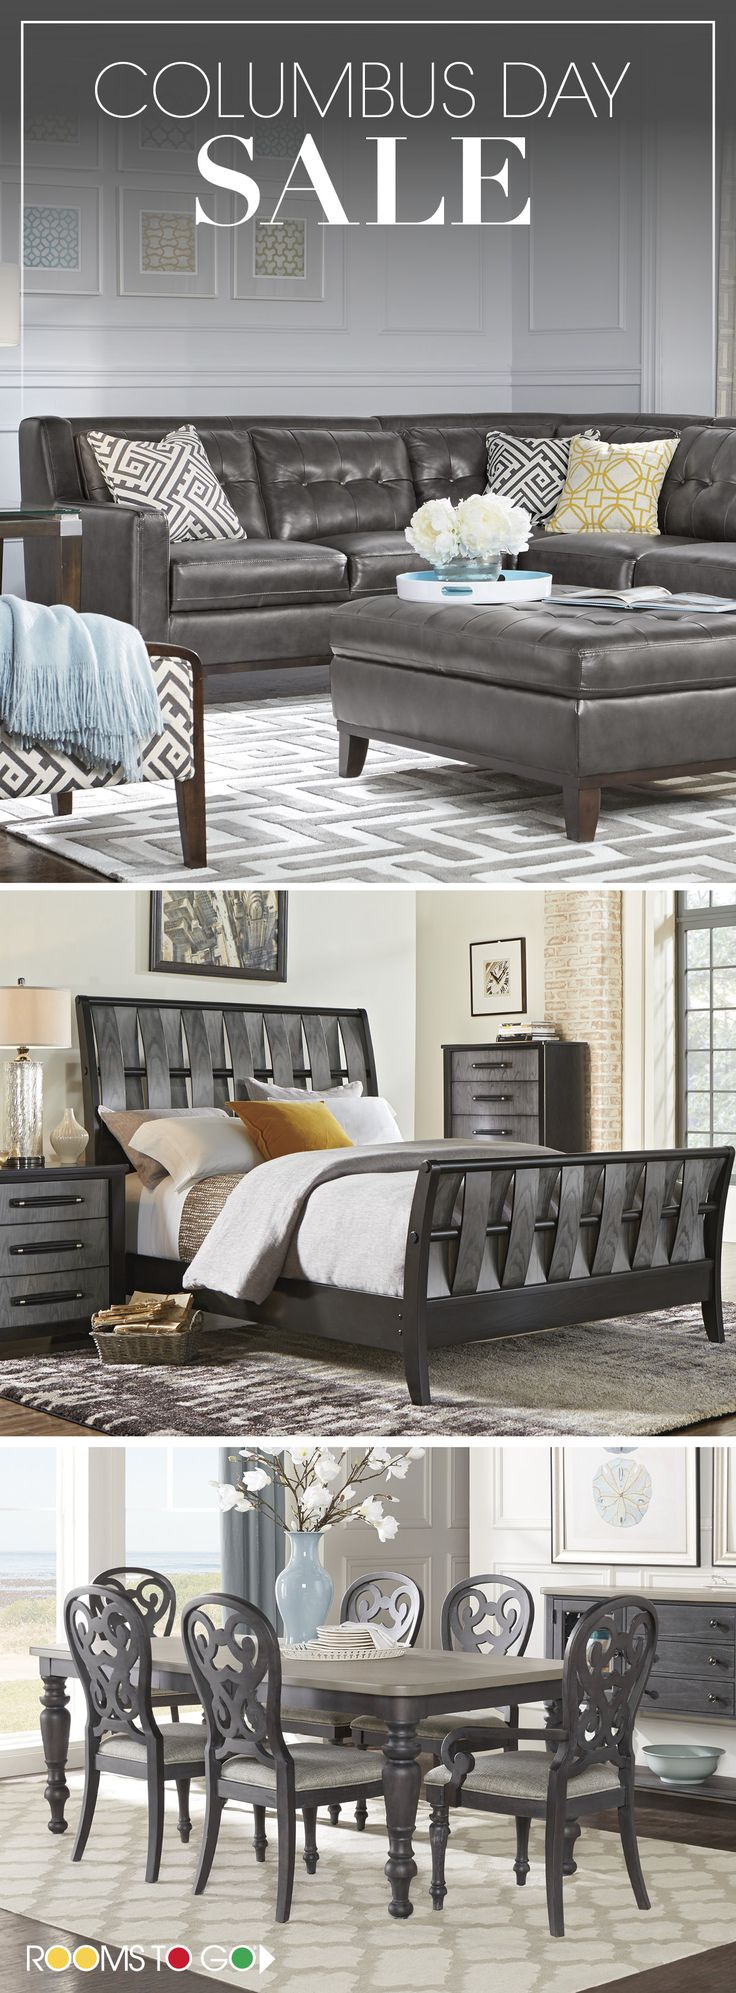 Looking For The Best Furniture Deals? Visit Rooms To Go Now, And Save On ·  Furniture DealsBest FurnitureTraditional DecorColumbus Day SaleAbandoned ...